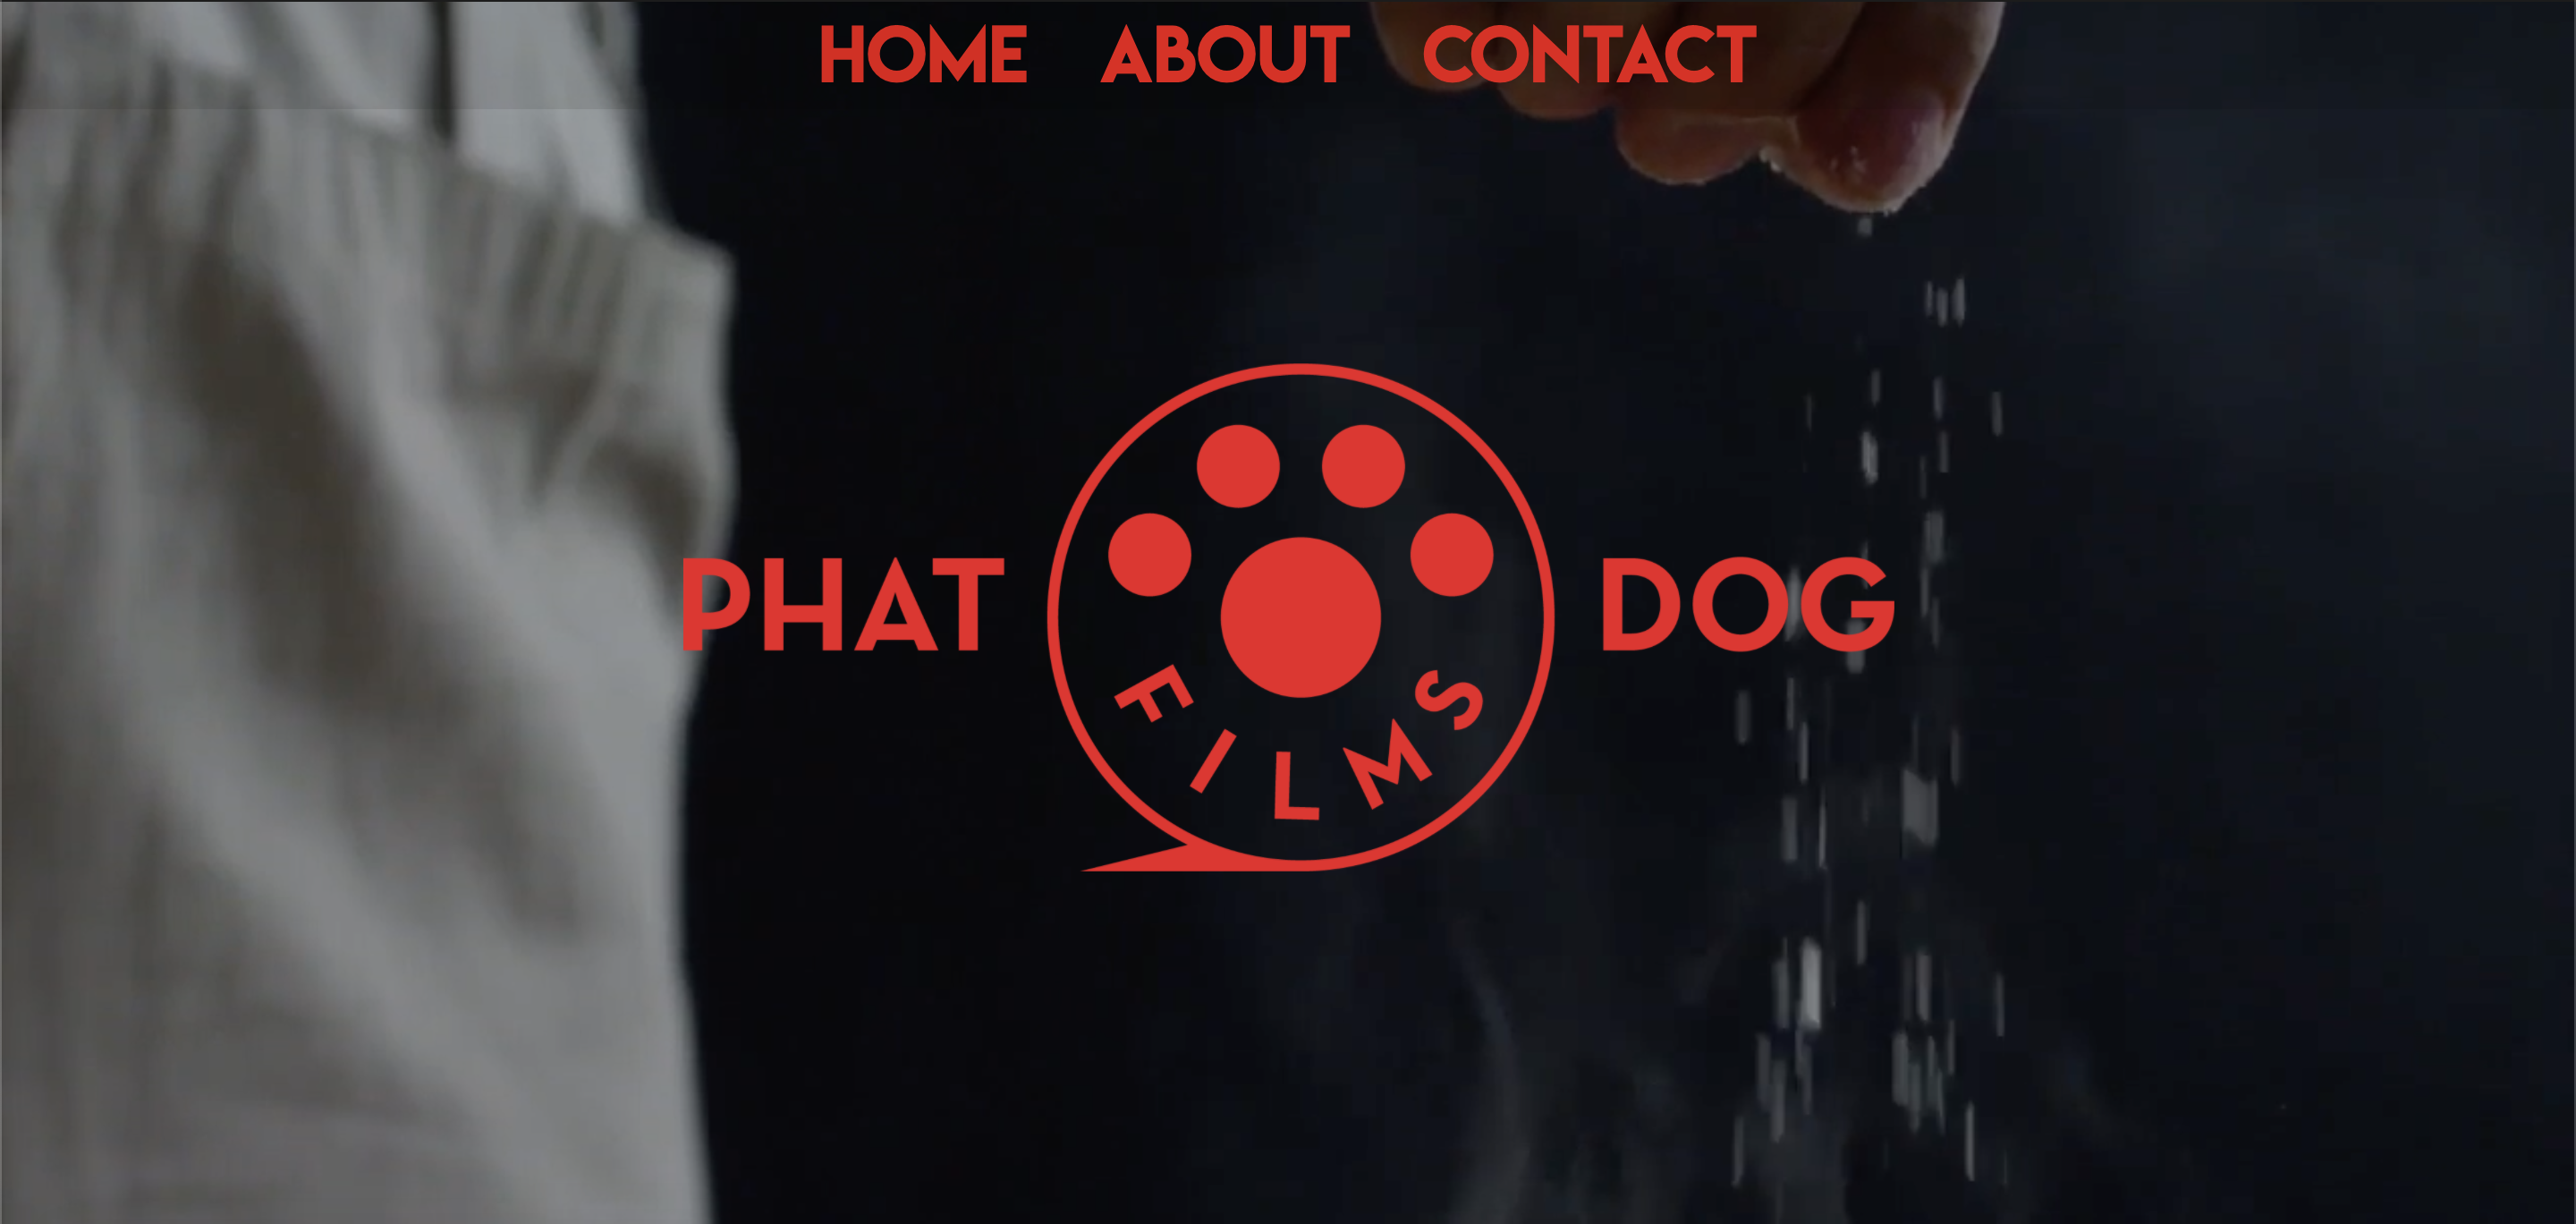 An image of the website design and logo for Phat Dog Films